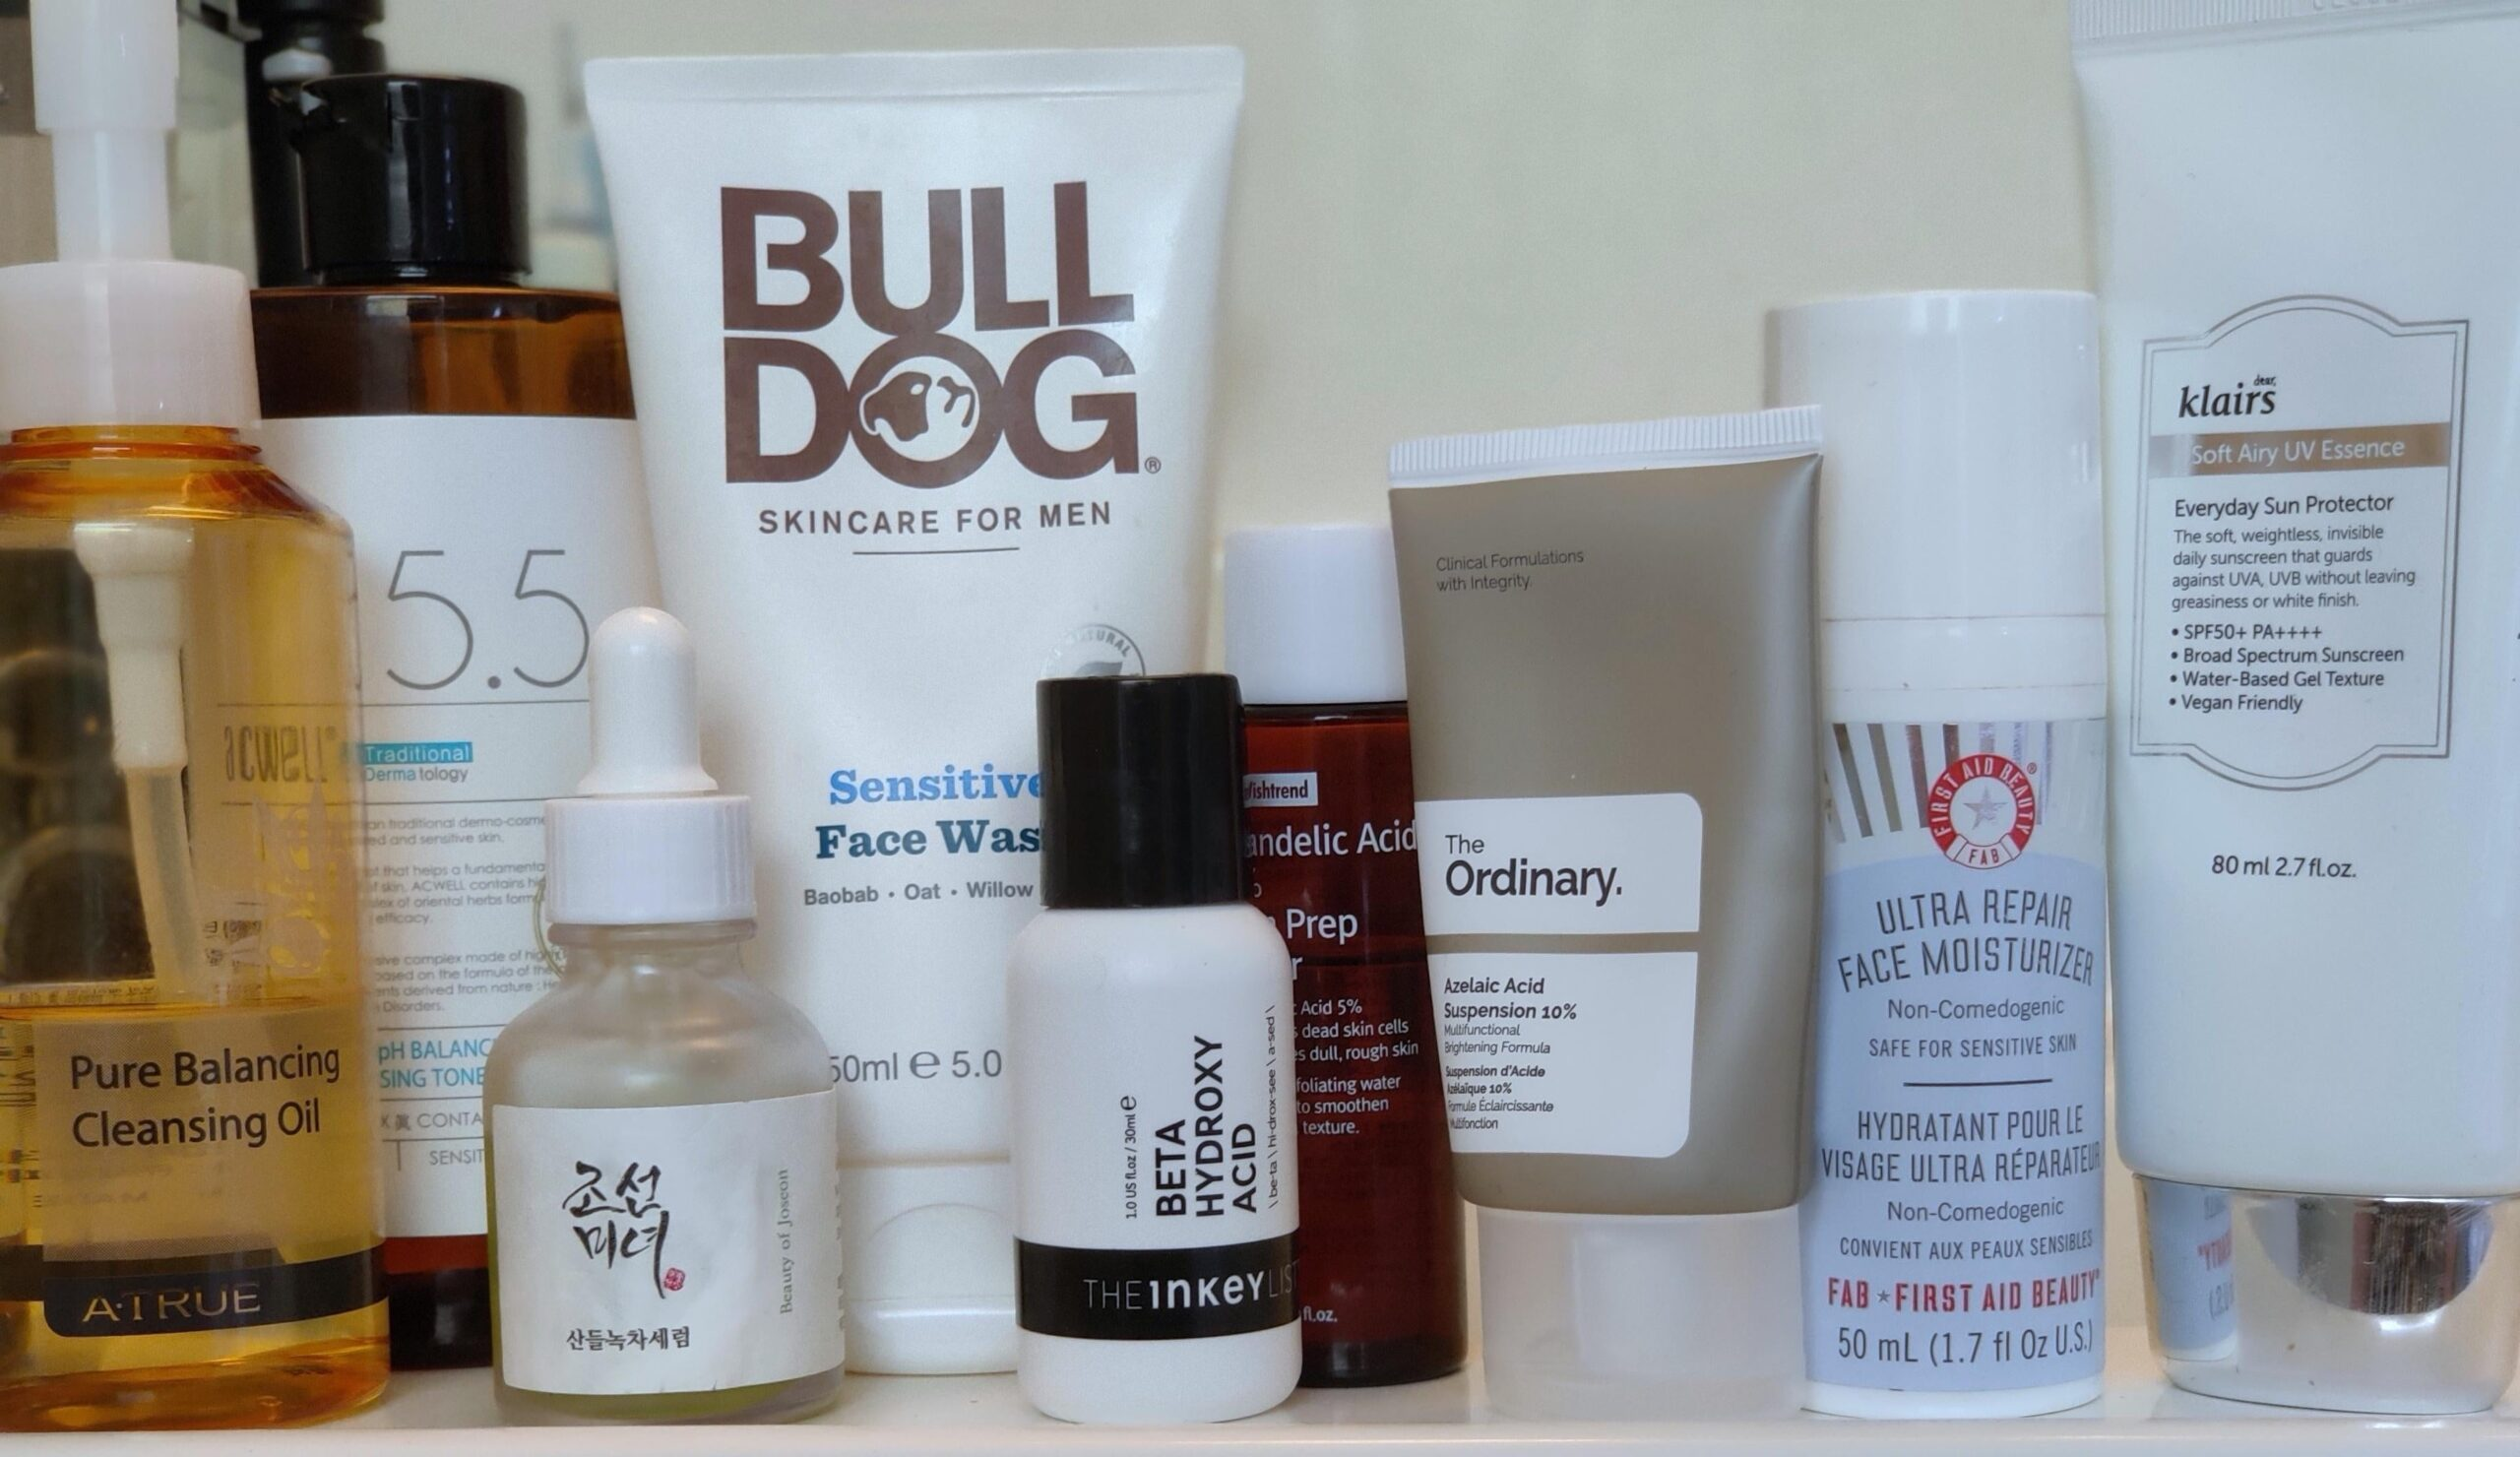 [Shelfie] Still finding out what works best with my skin, but this has been a good start!